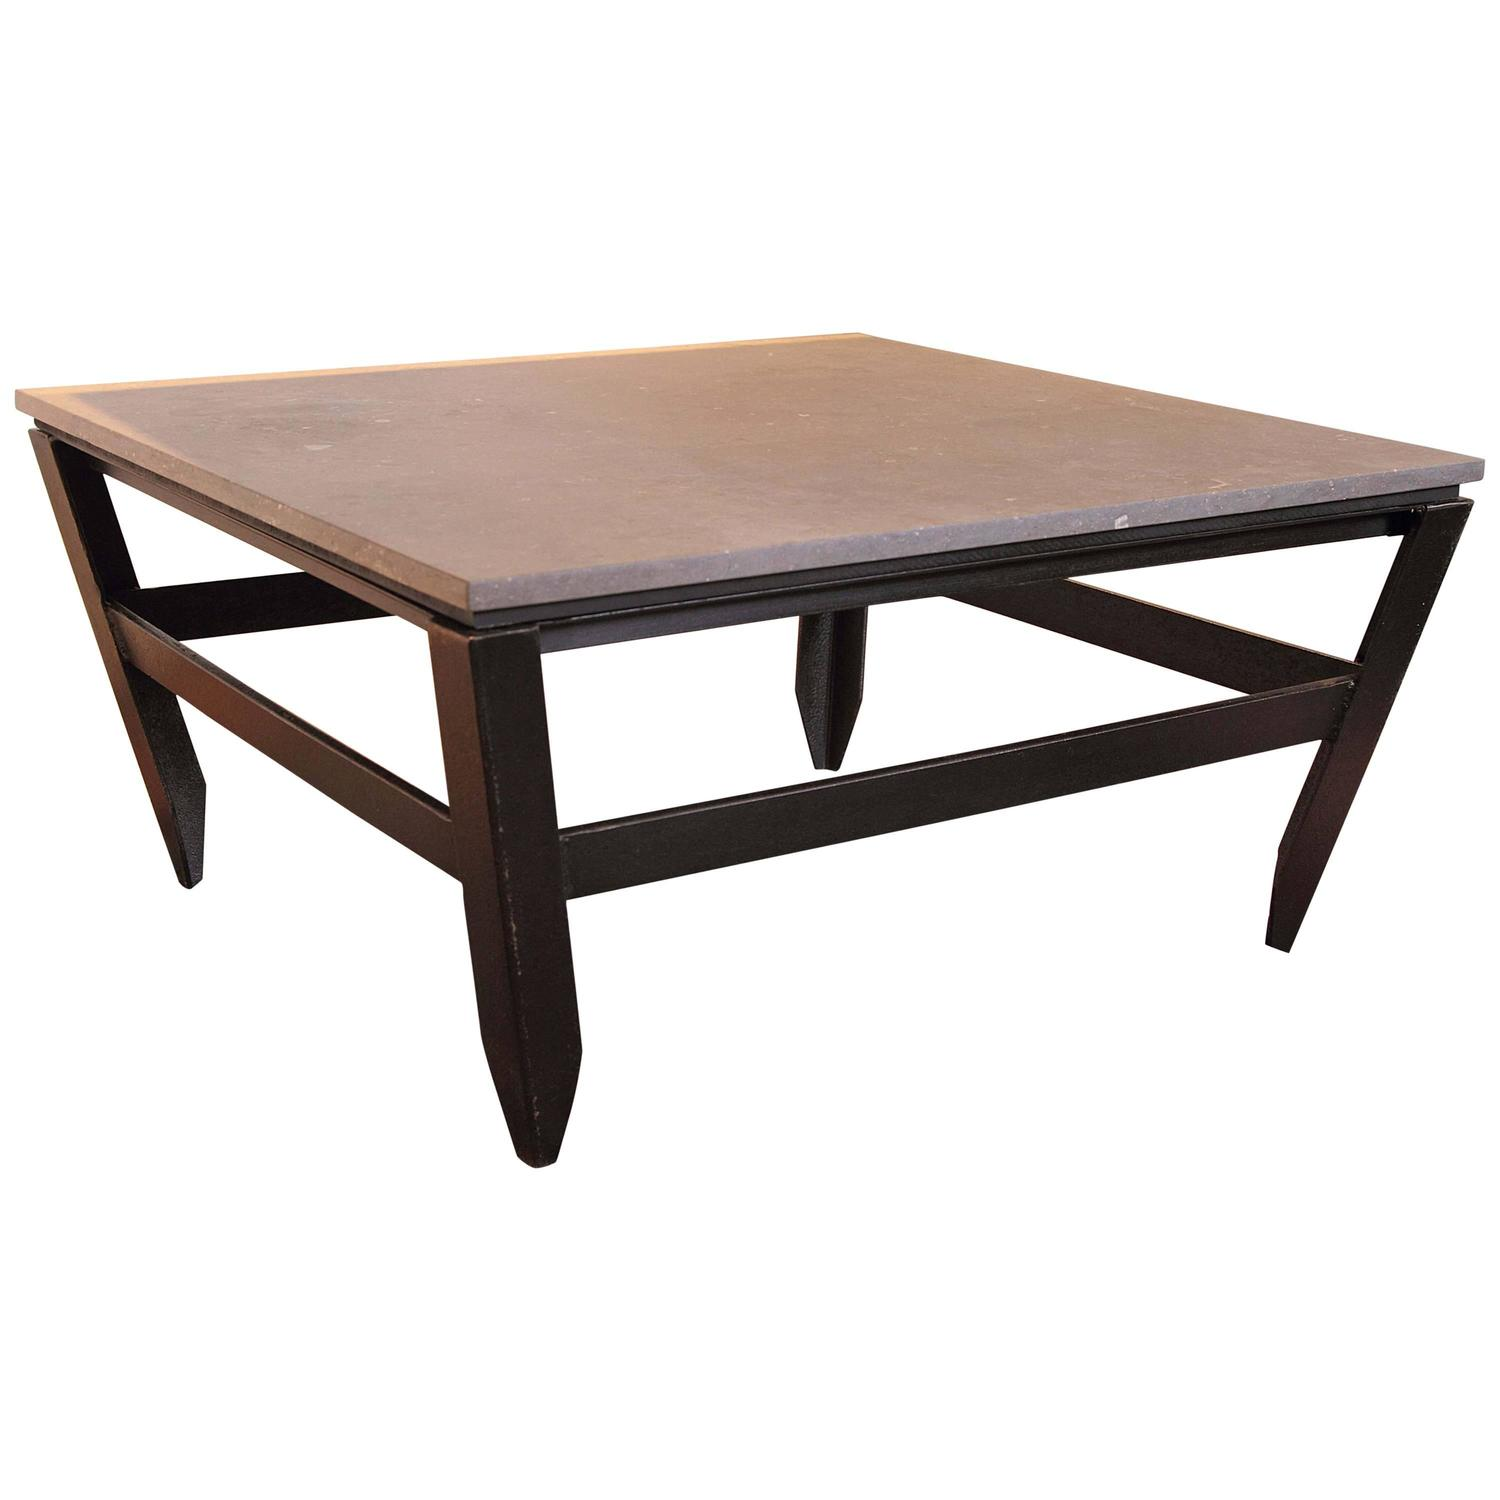 Small Modern Coffee Table 1960s For Sale At 1stdibs: French Modern Angled Coffee Table, Circa 1960s For Sale At